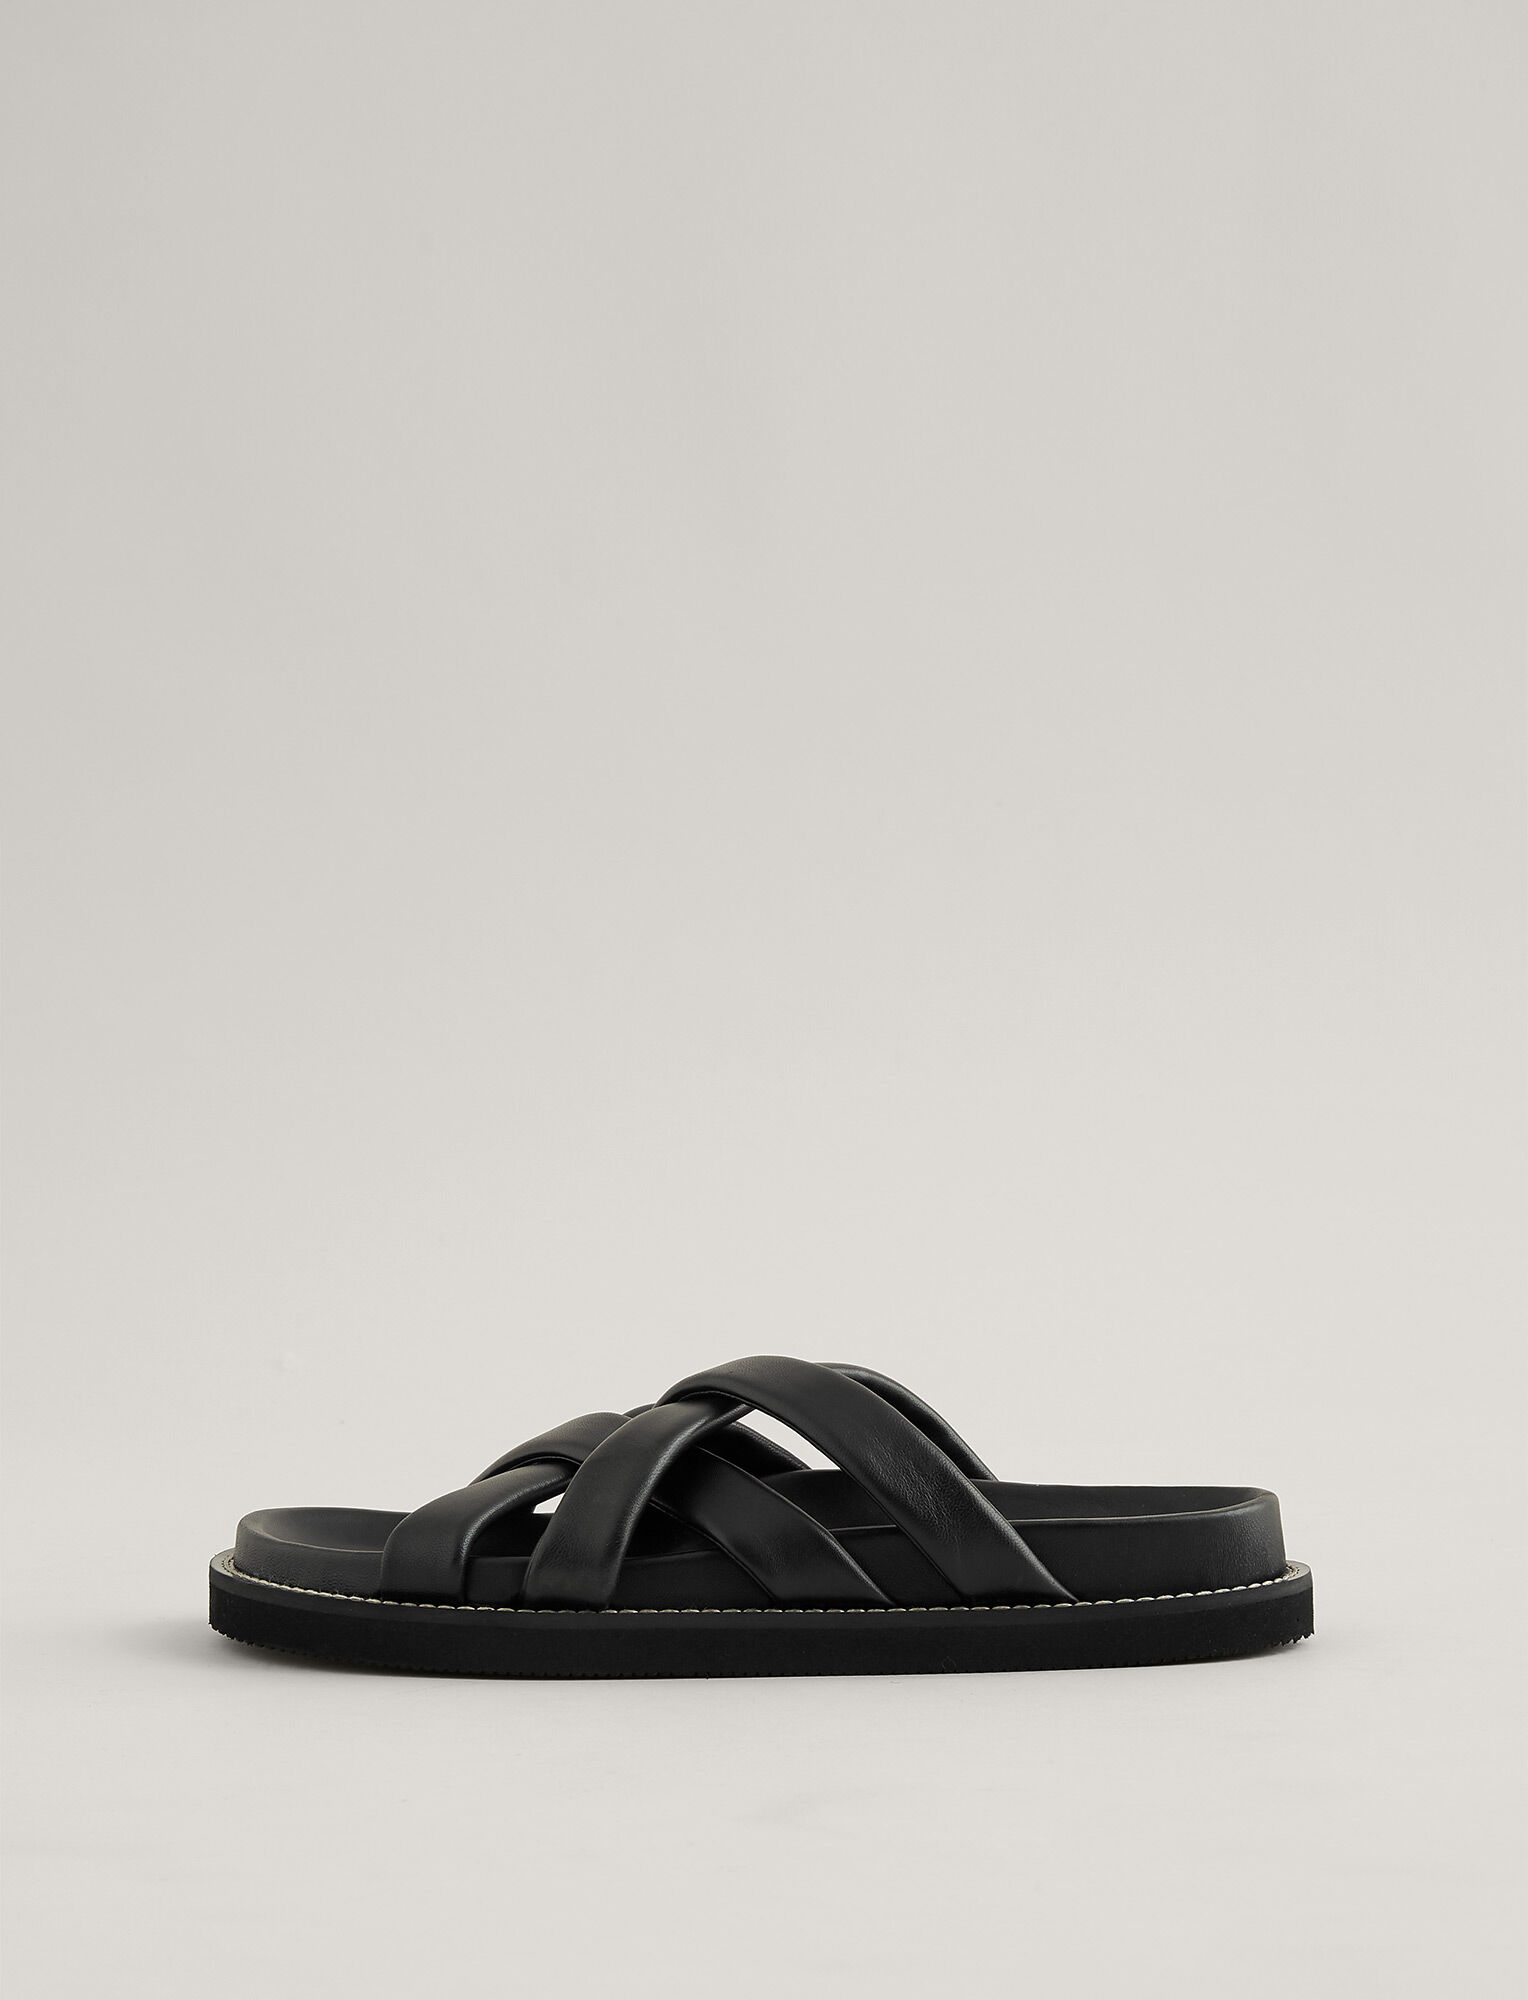 Joseph, Jamila Leather Sandal, in BLACK